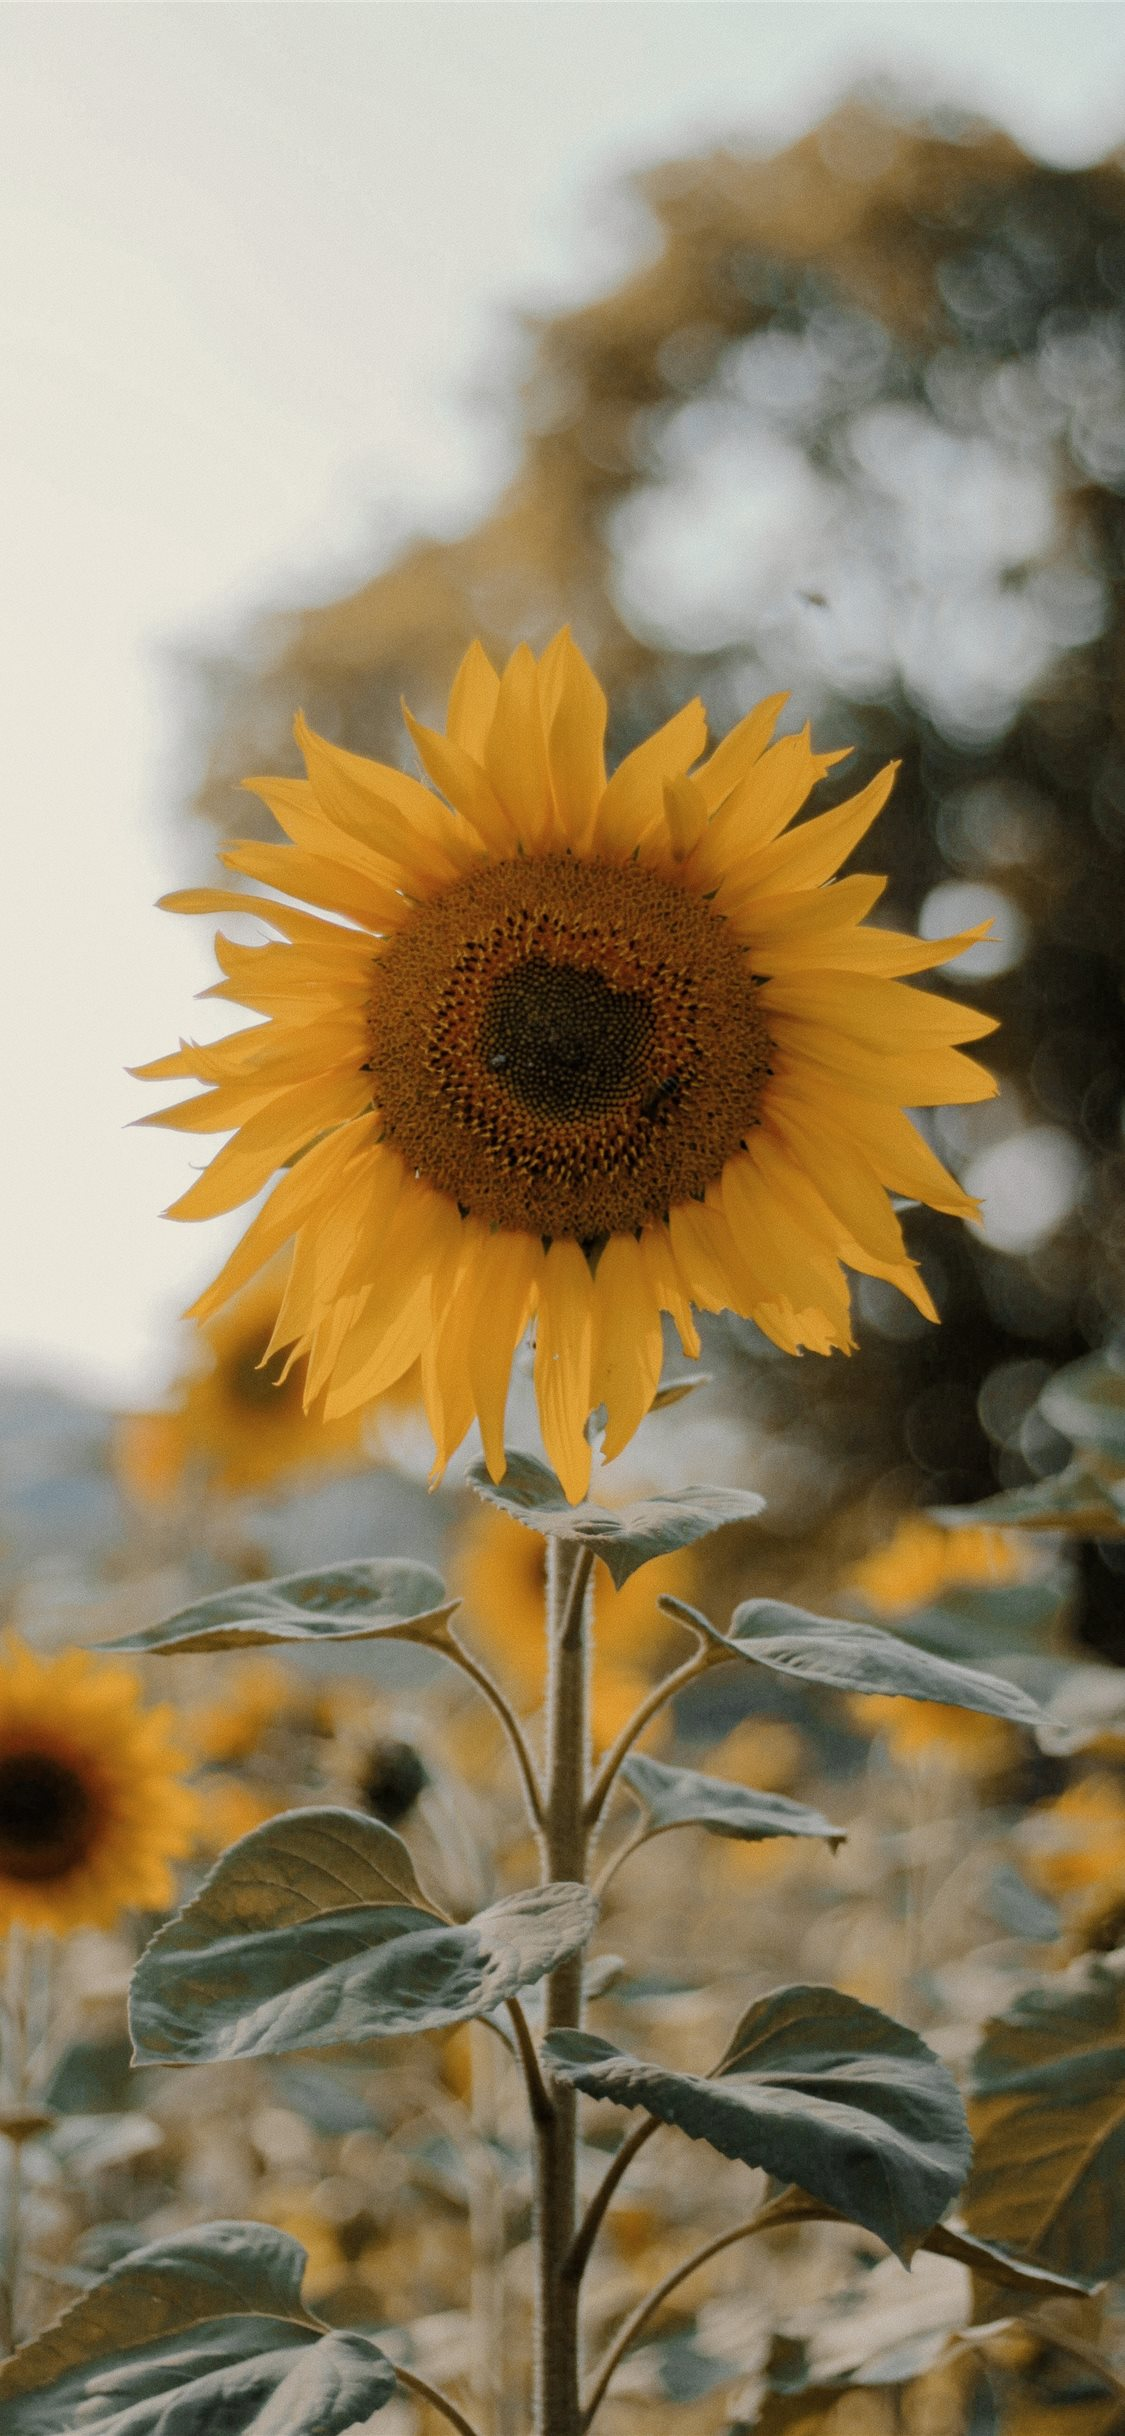 Sunflower Iphone Wallpapers Posted By Michelle Thompson